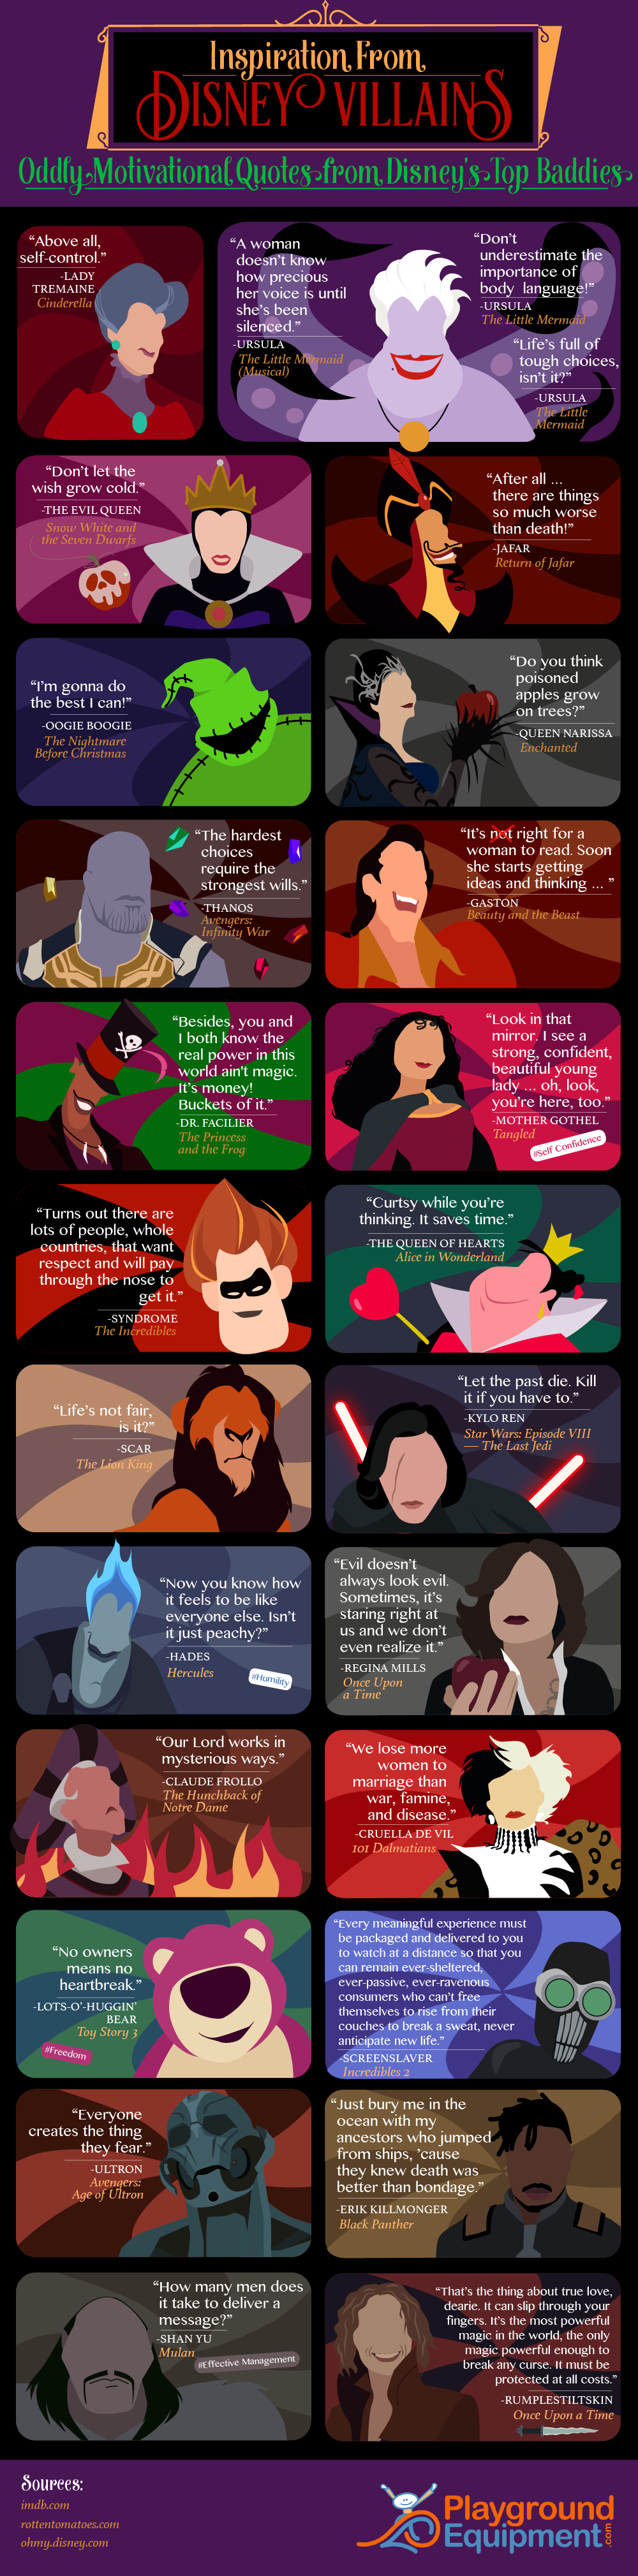 Inspiration from Disney Villains: Oddly Motivational Quotes ...